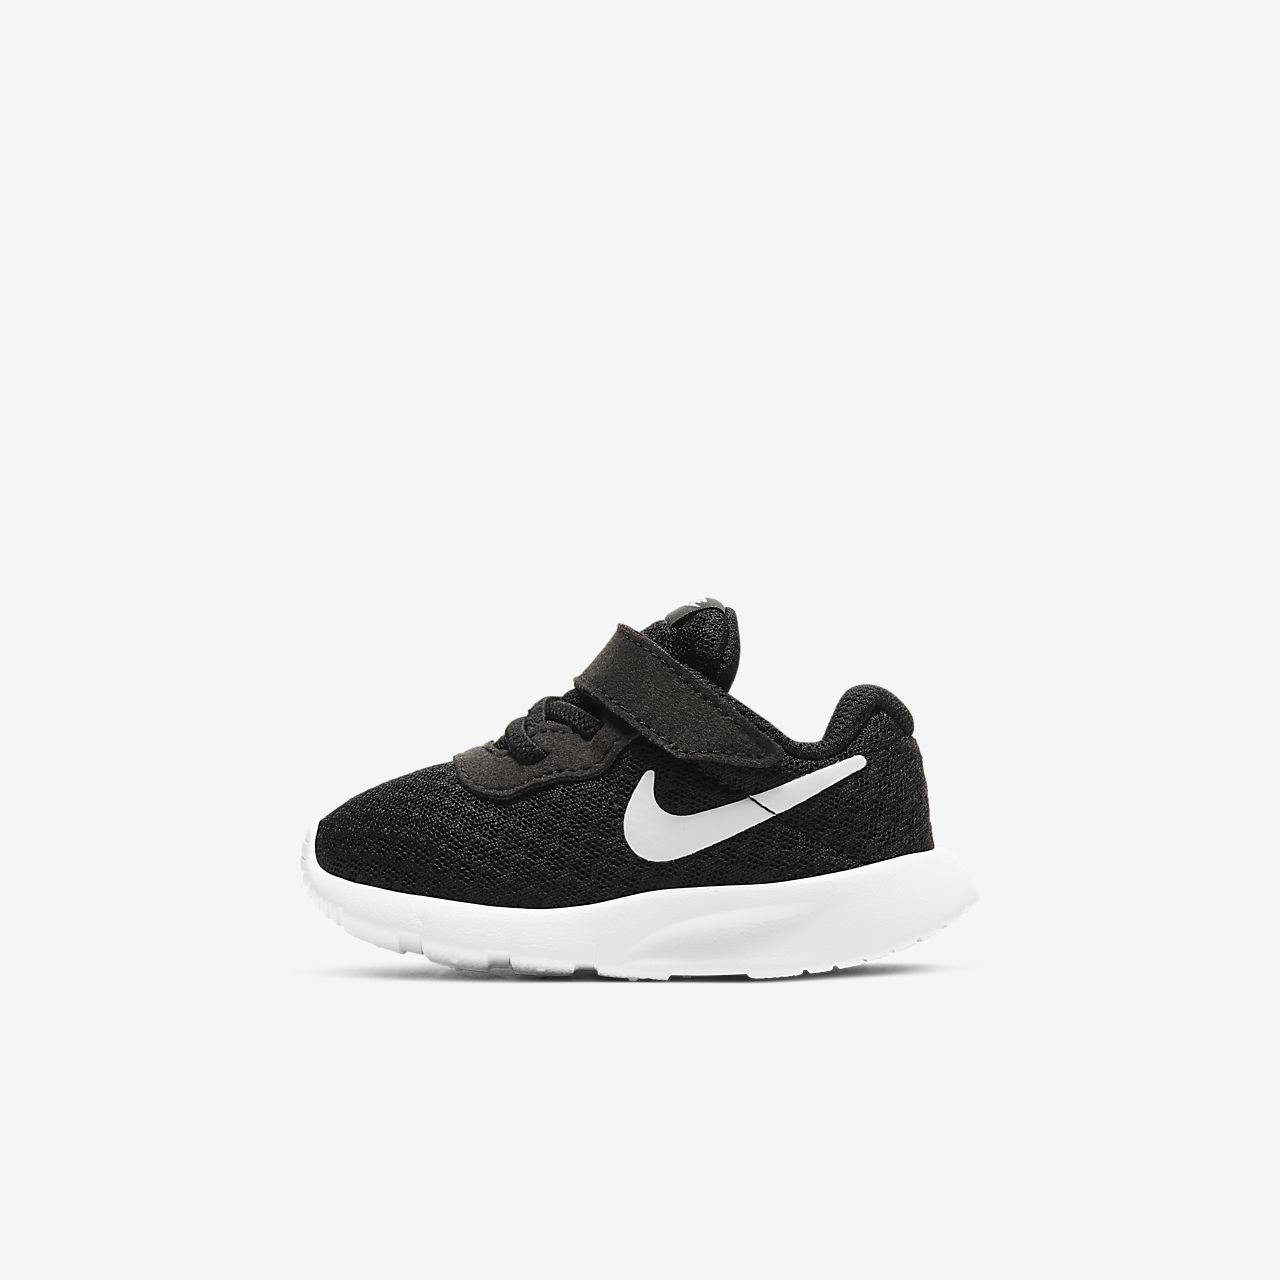 nike tanjun running shoes black nz